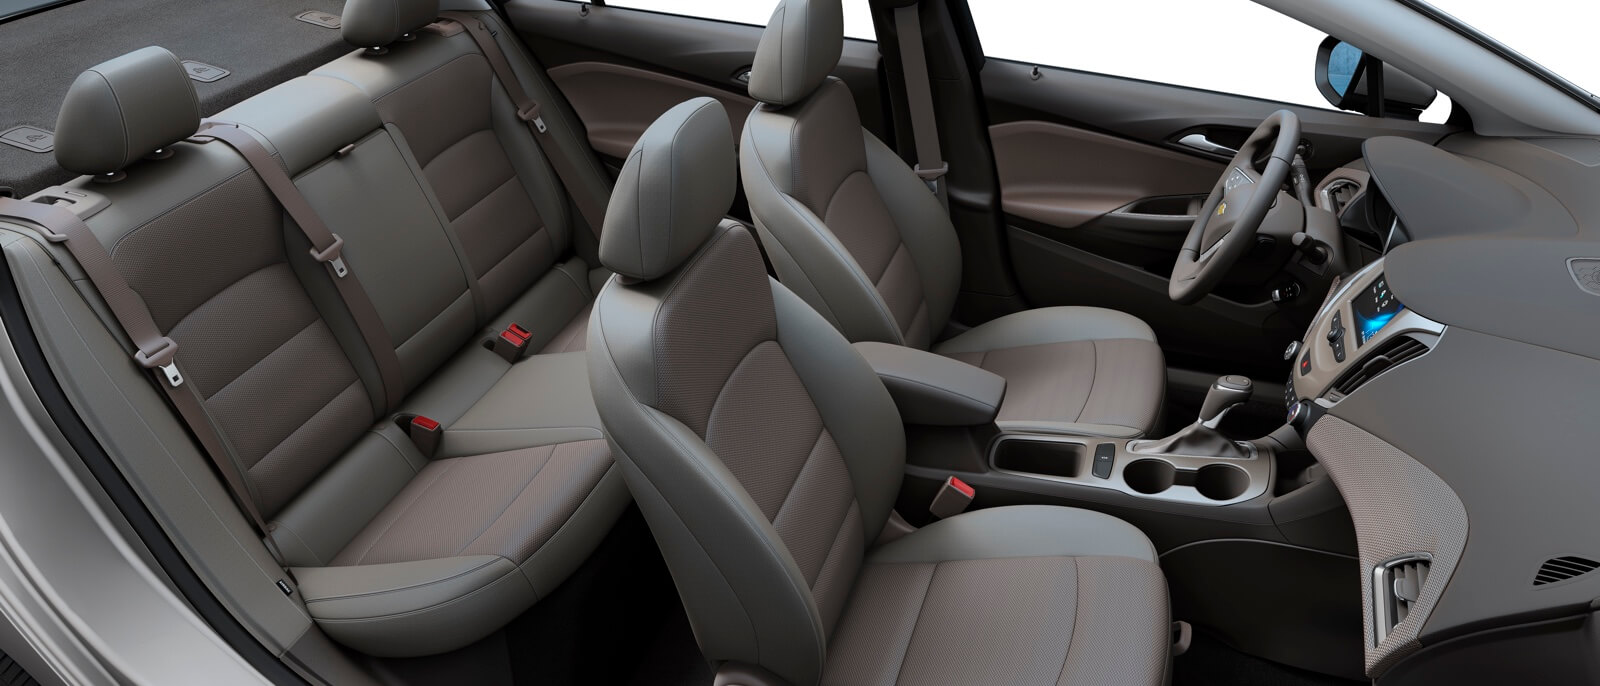 Attractive 2017 Chevrolet Cruze Sedan Interior Seating ...